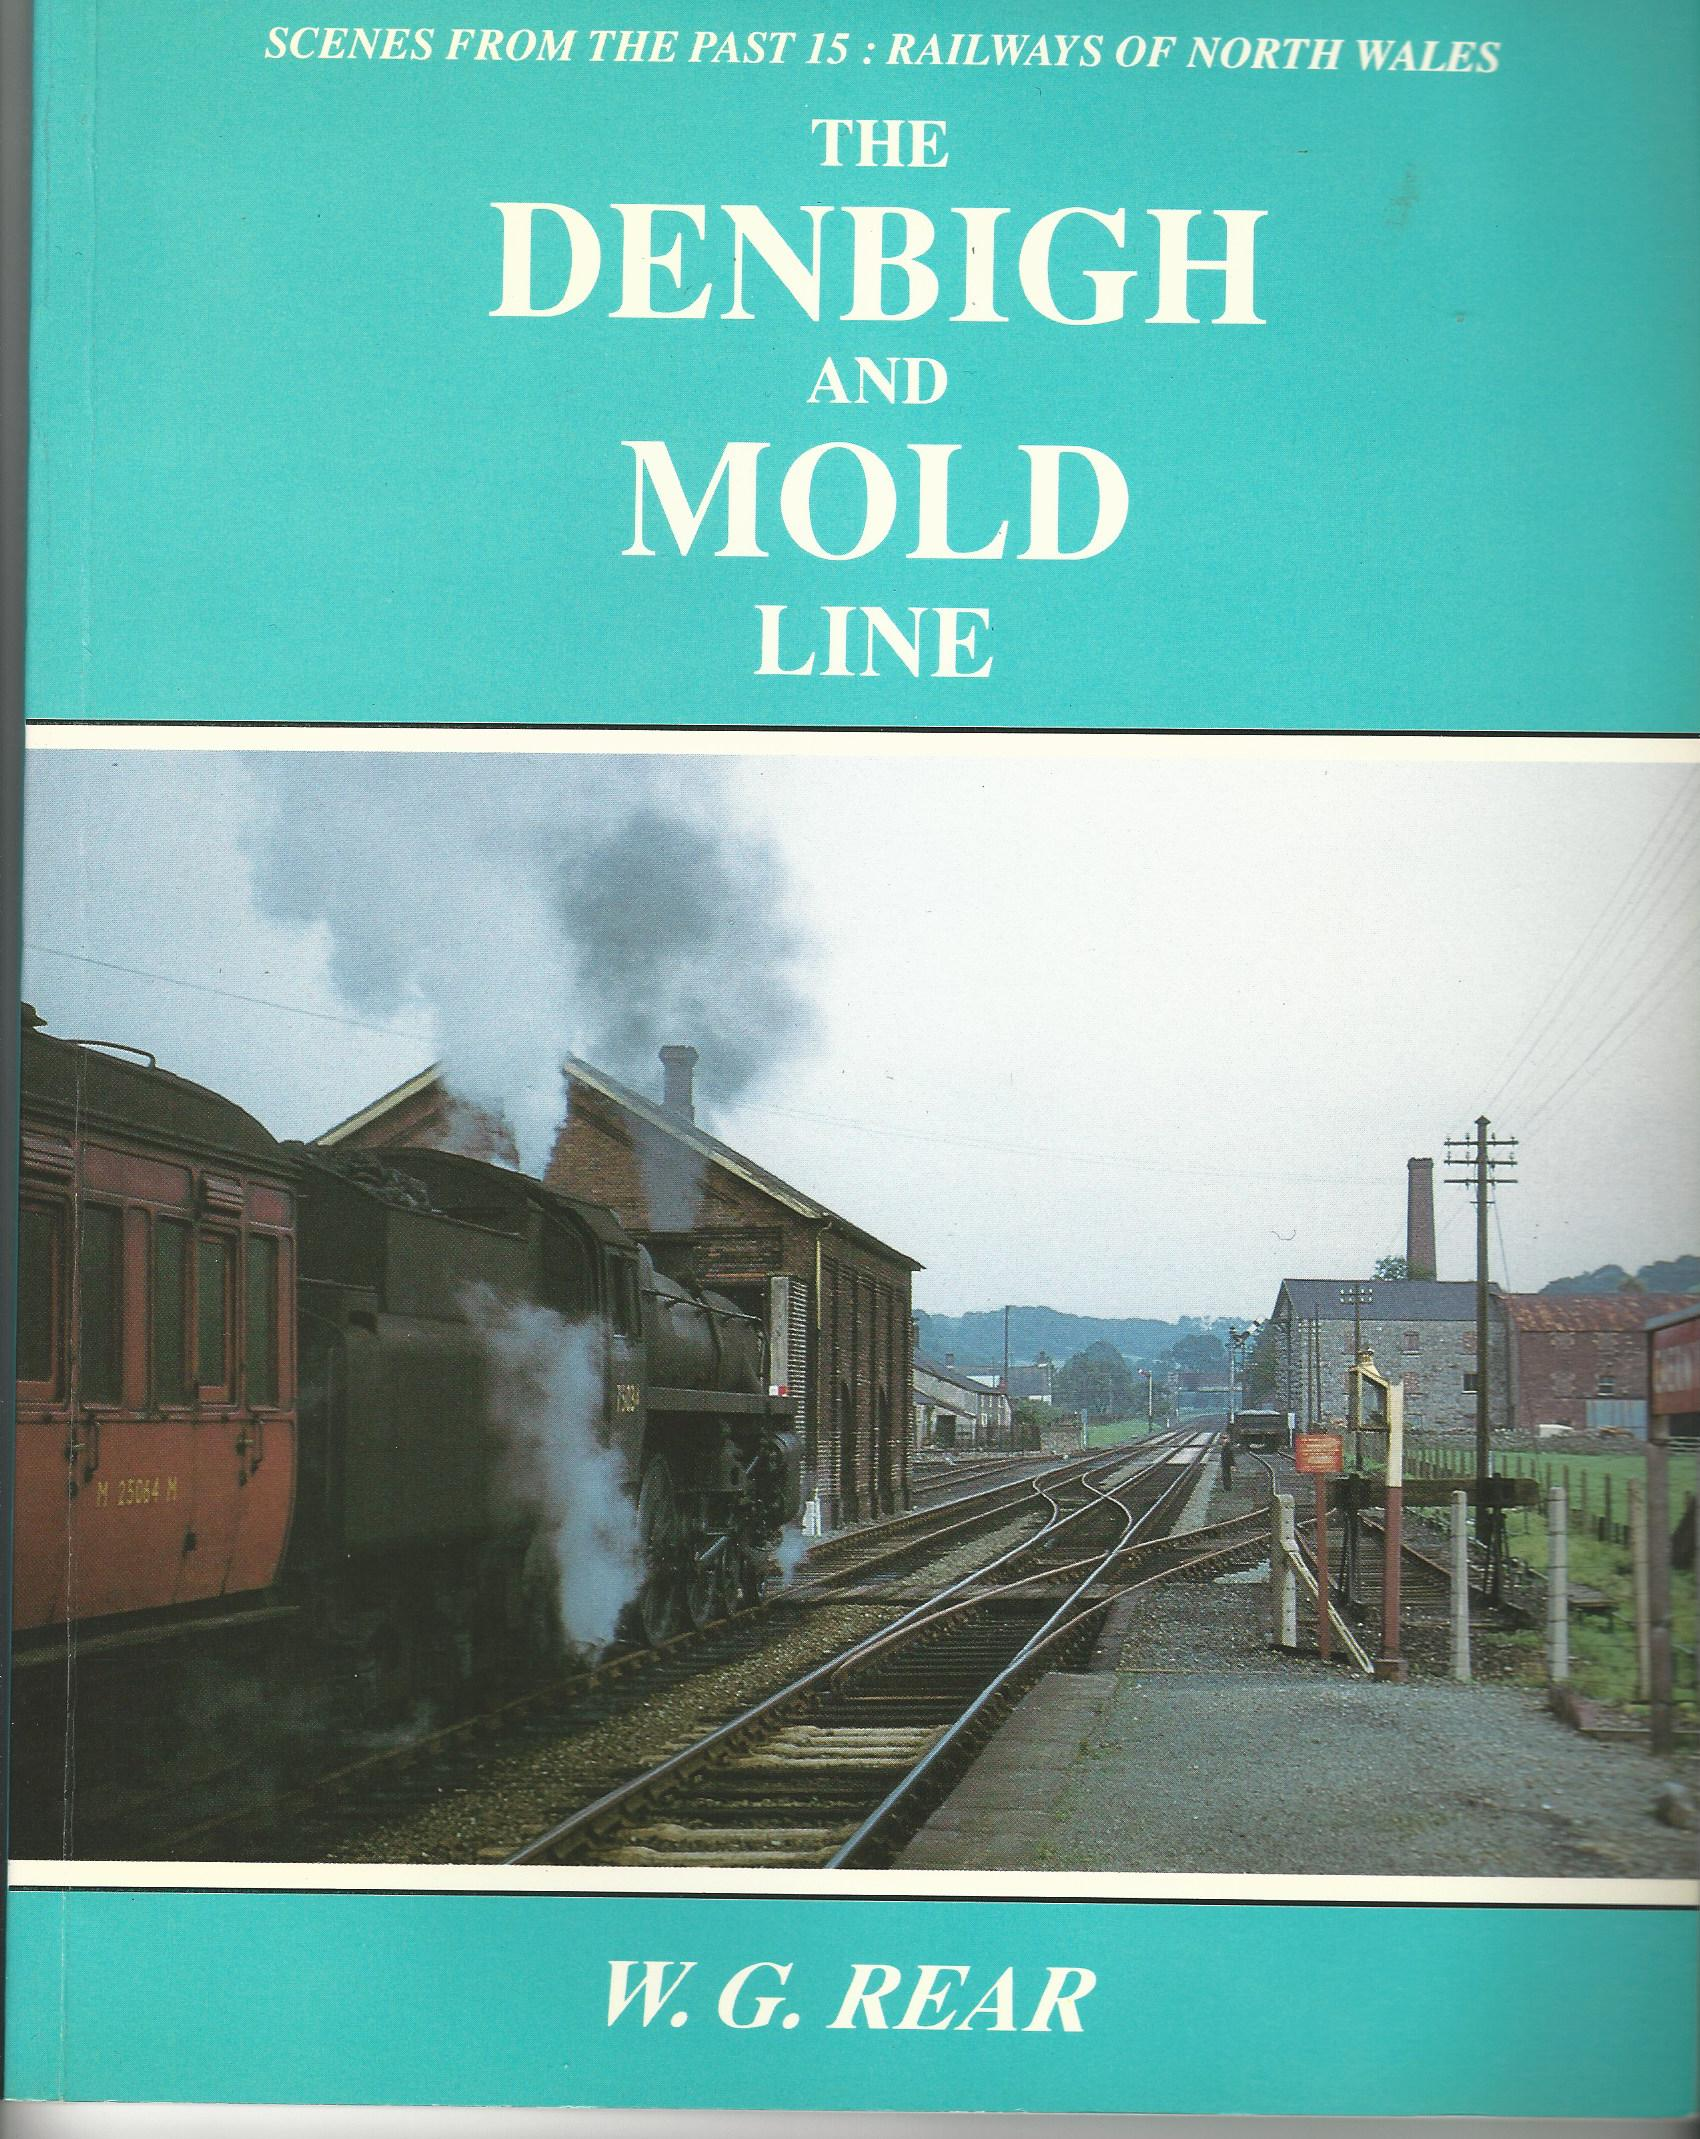 Image for Railways of North Wales (Scenes from the Past): The Denbigh and Mold Line.